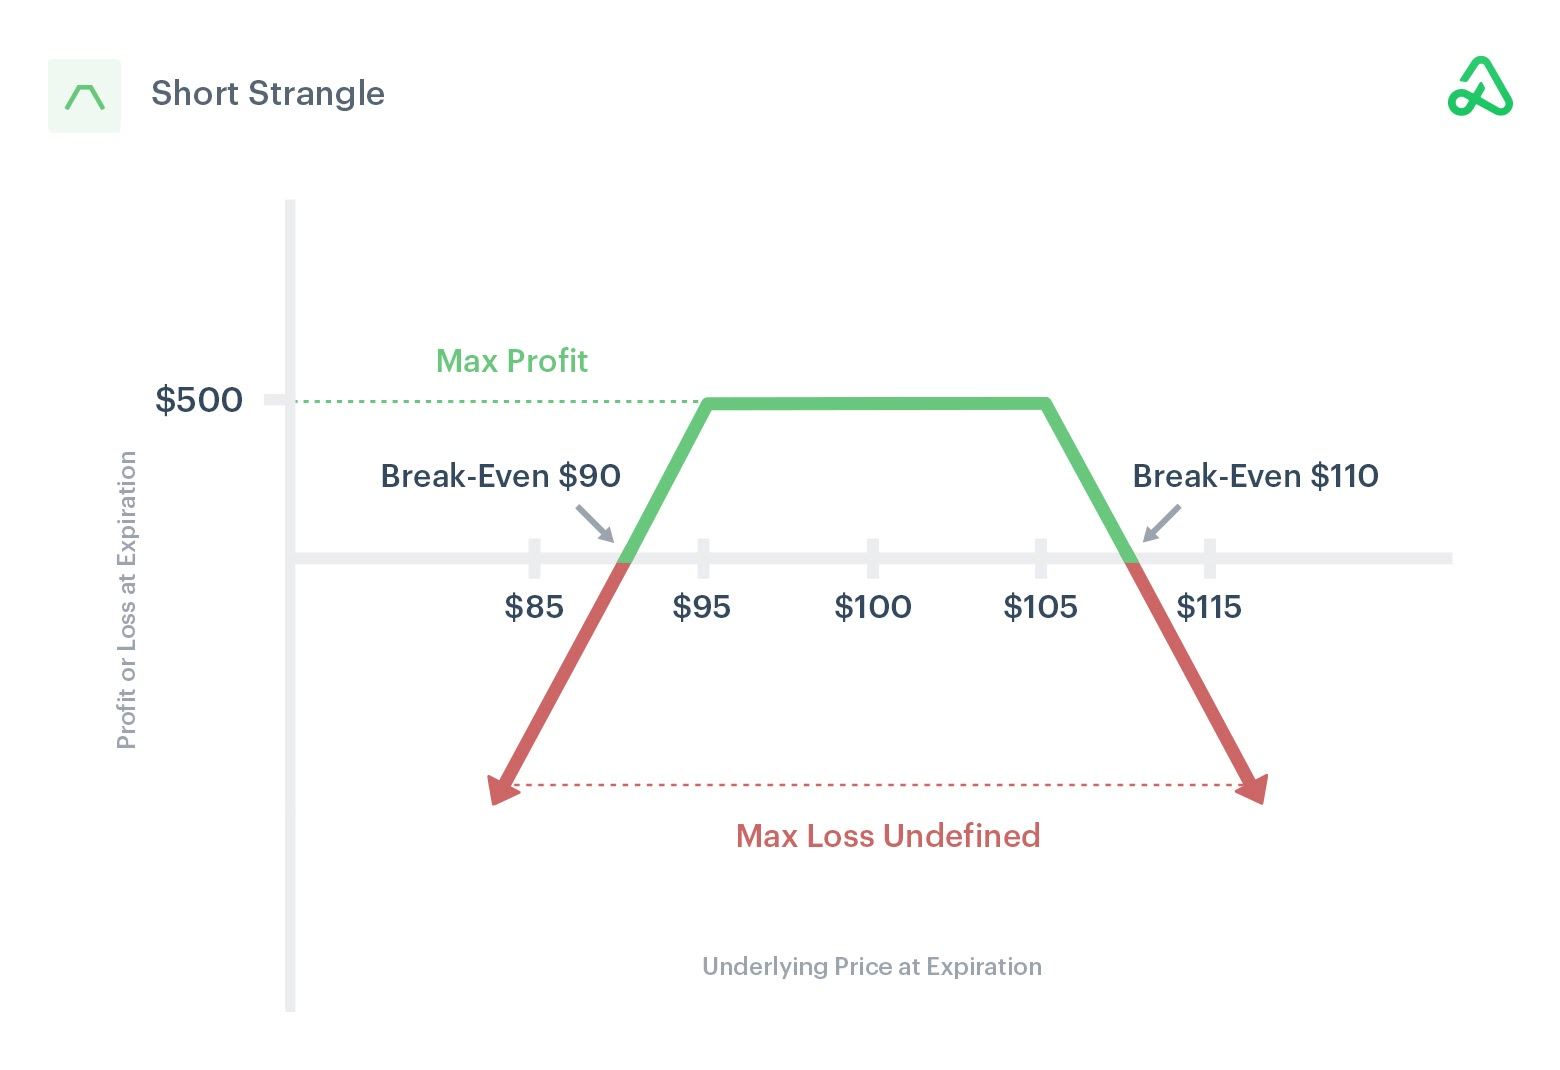 Image of short strangle payoff diagram showing max profit, max loss, and break-even points